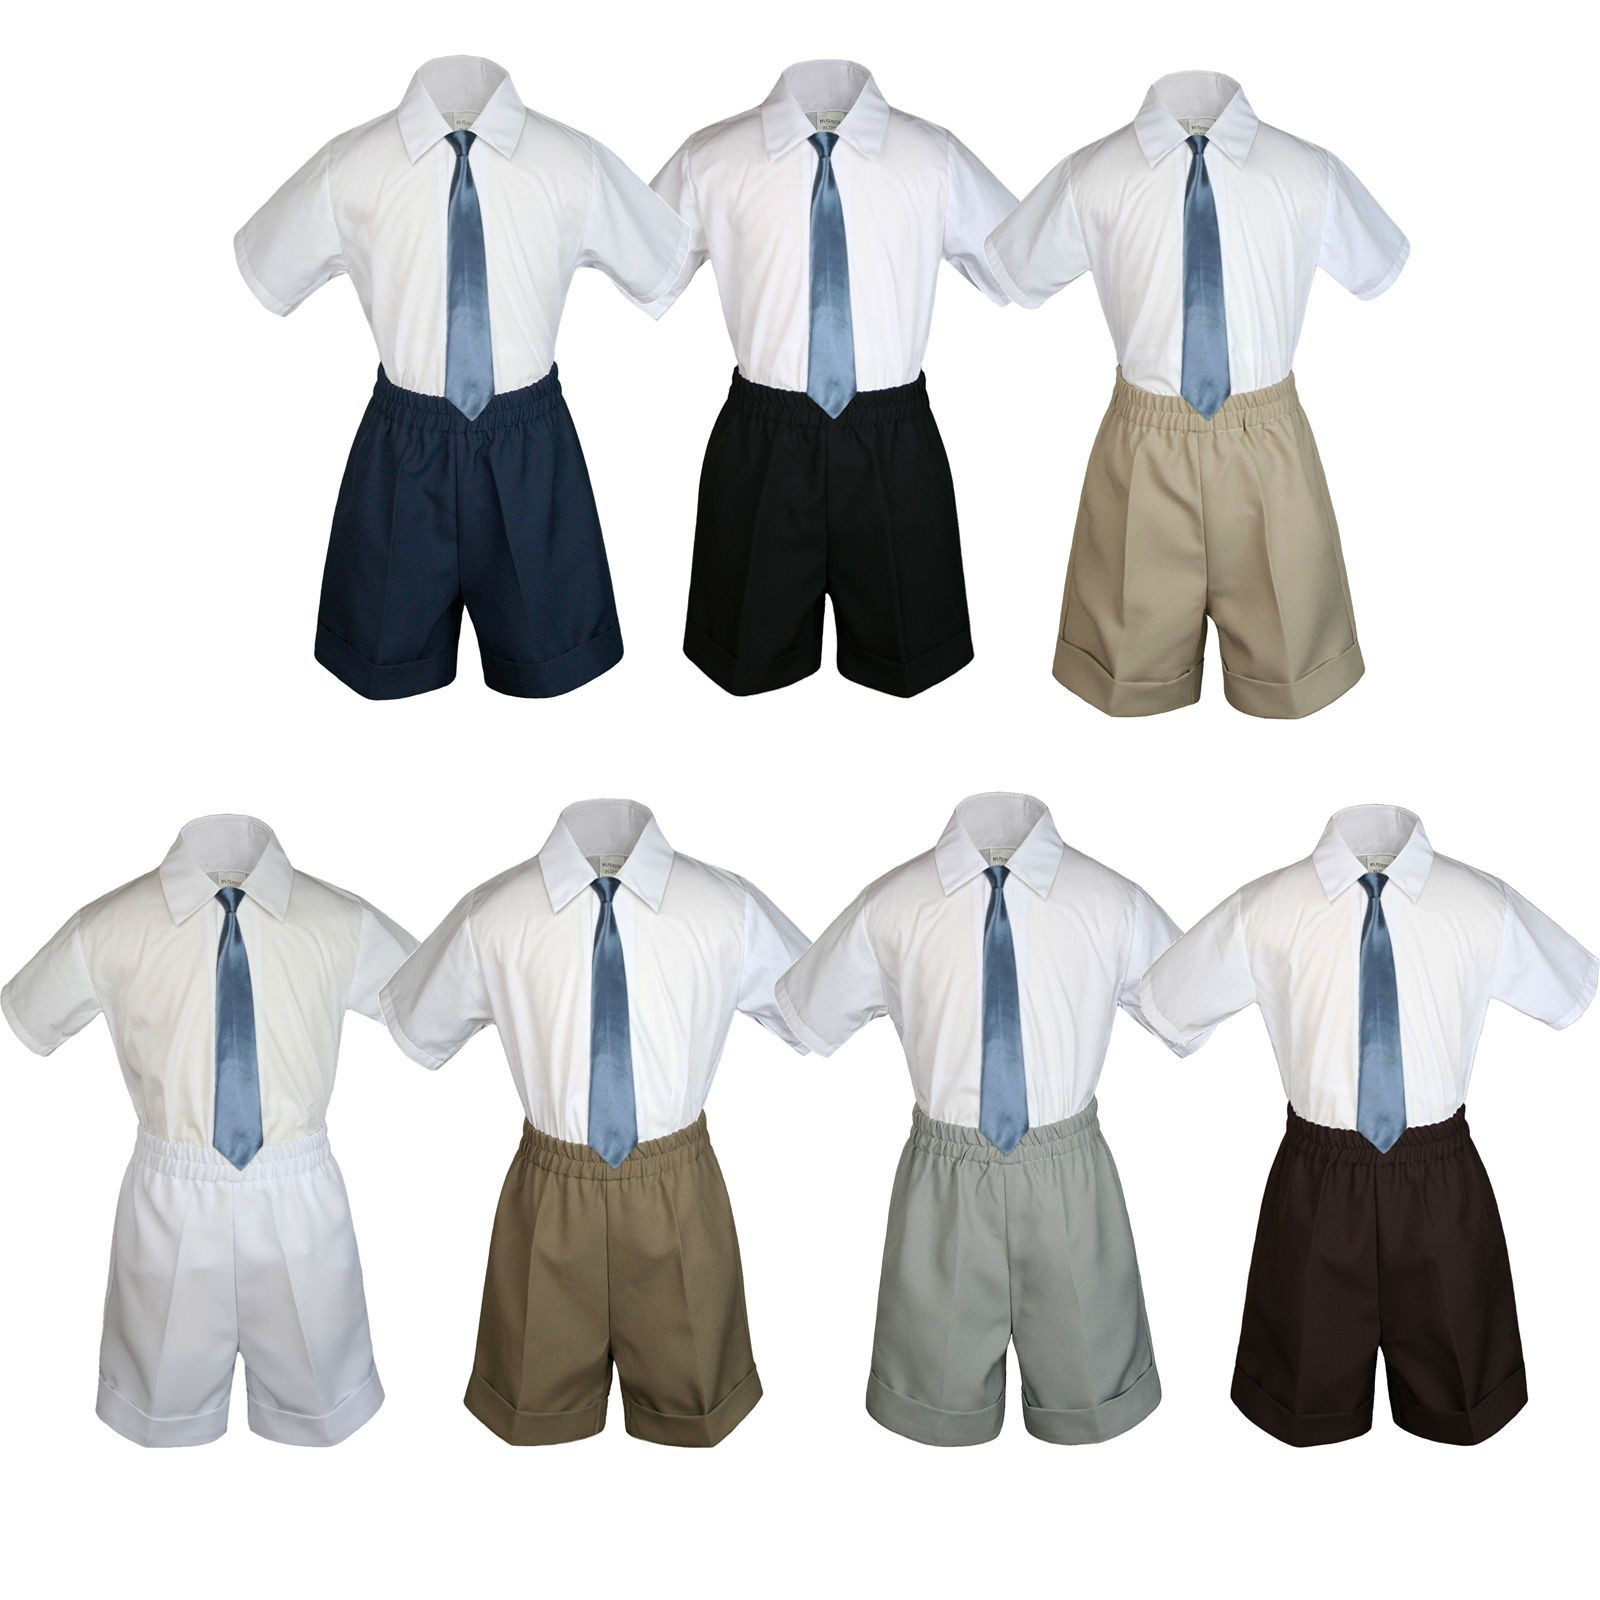 3pc Baby Toddler Kid Boy Party Formal Suit Brown Pants Shirt Bow Tie Set Sm-4T